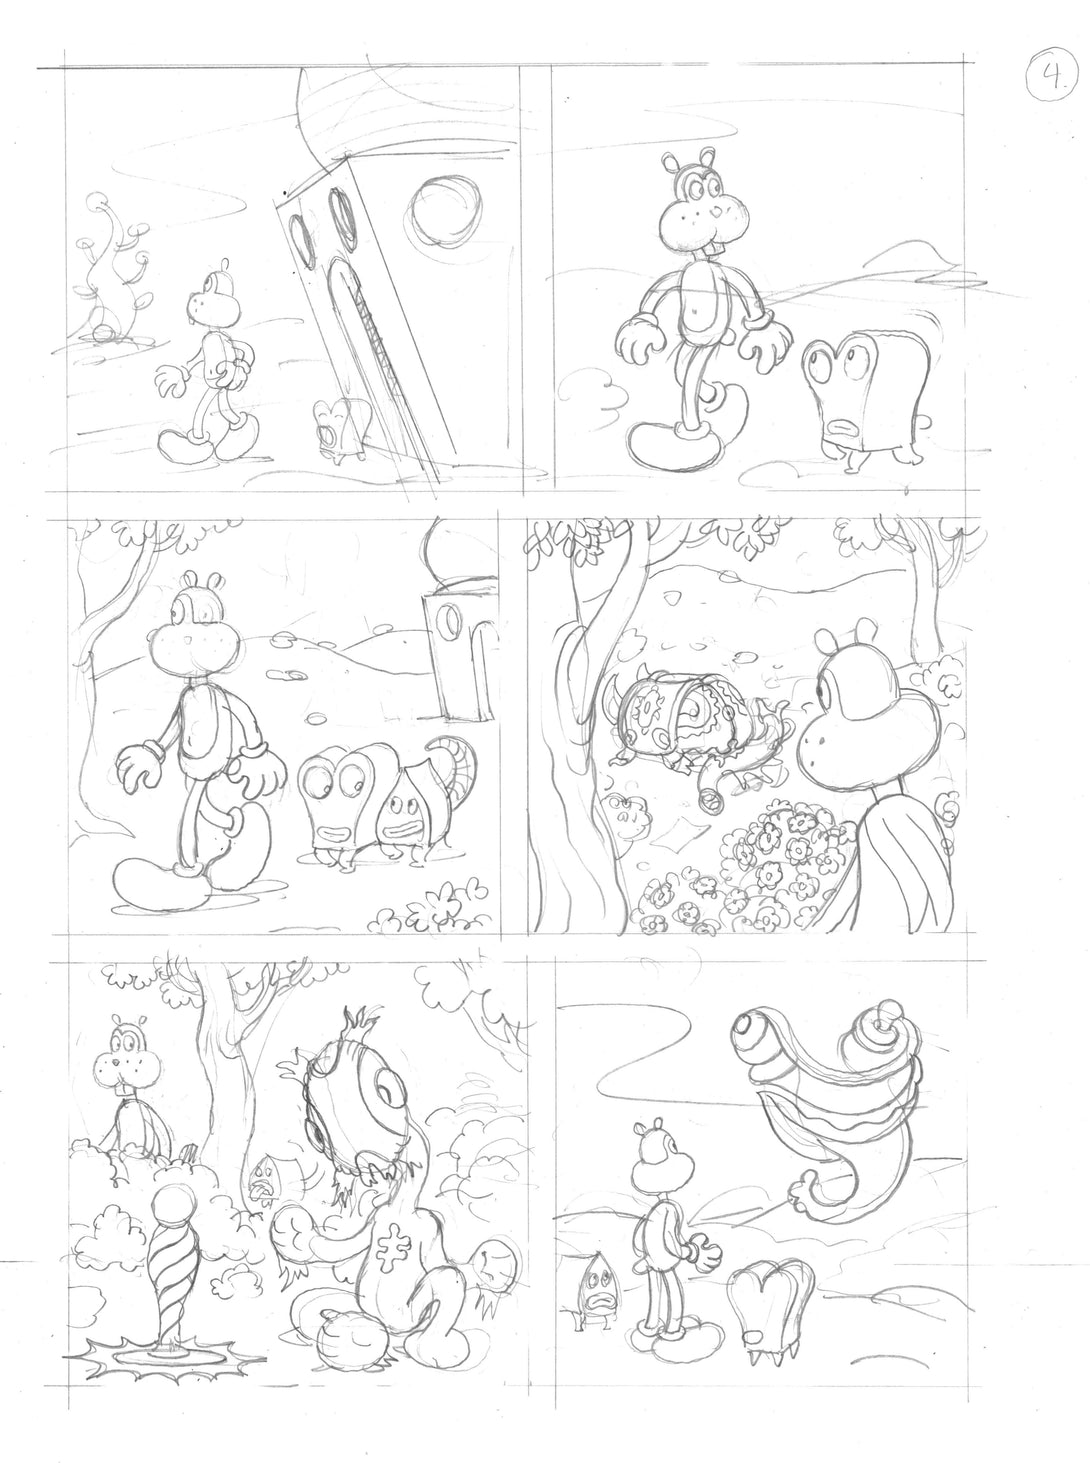 zPenciled unused FRANK page ready-to-ink.